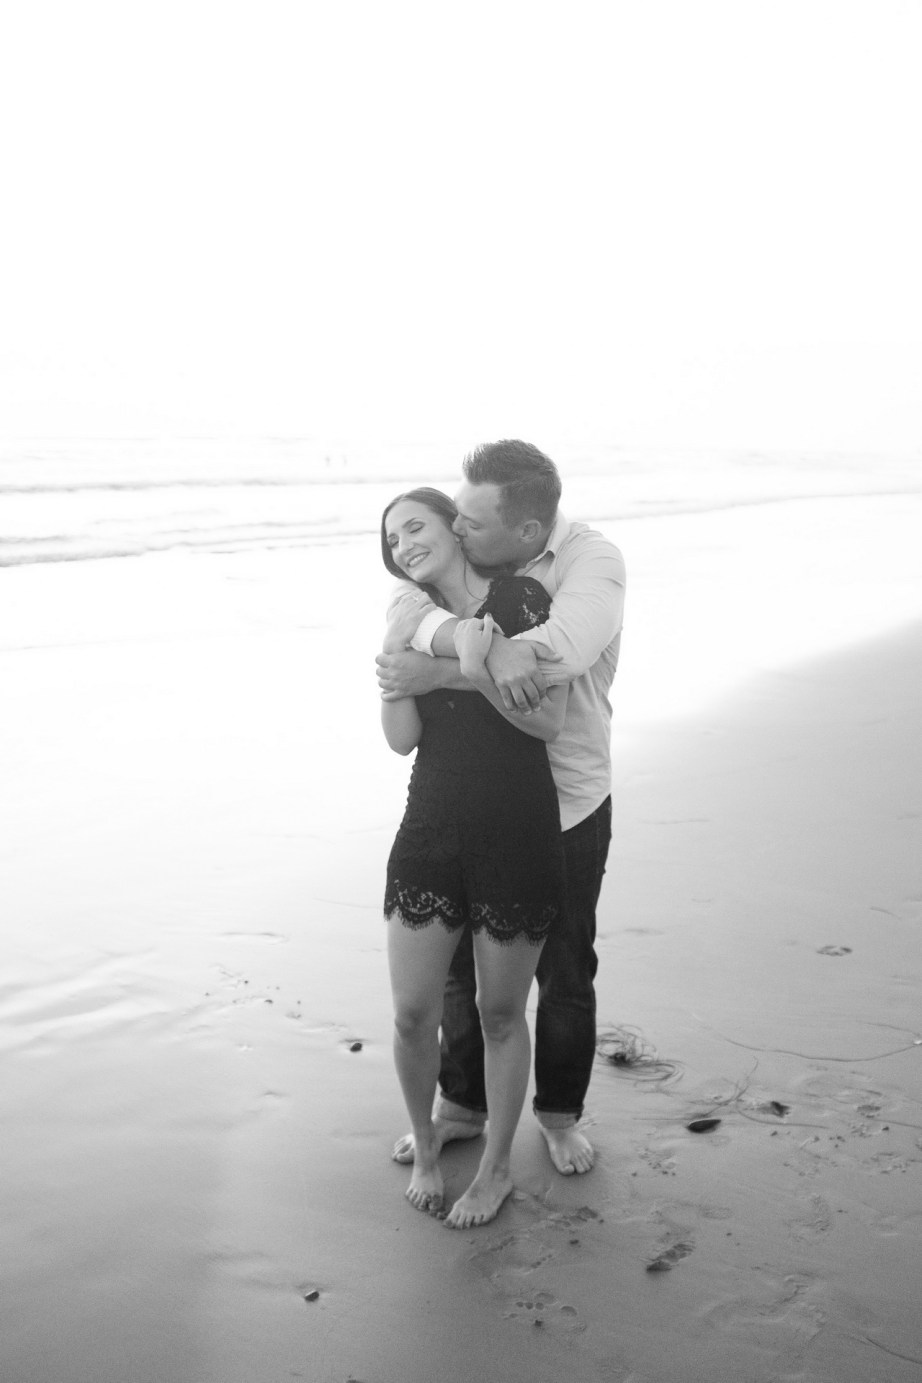 suprise_proposal_engagement_photographer_solana_beach_nicole_caldwell29